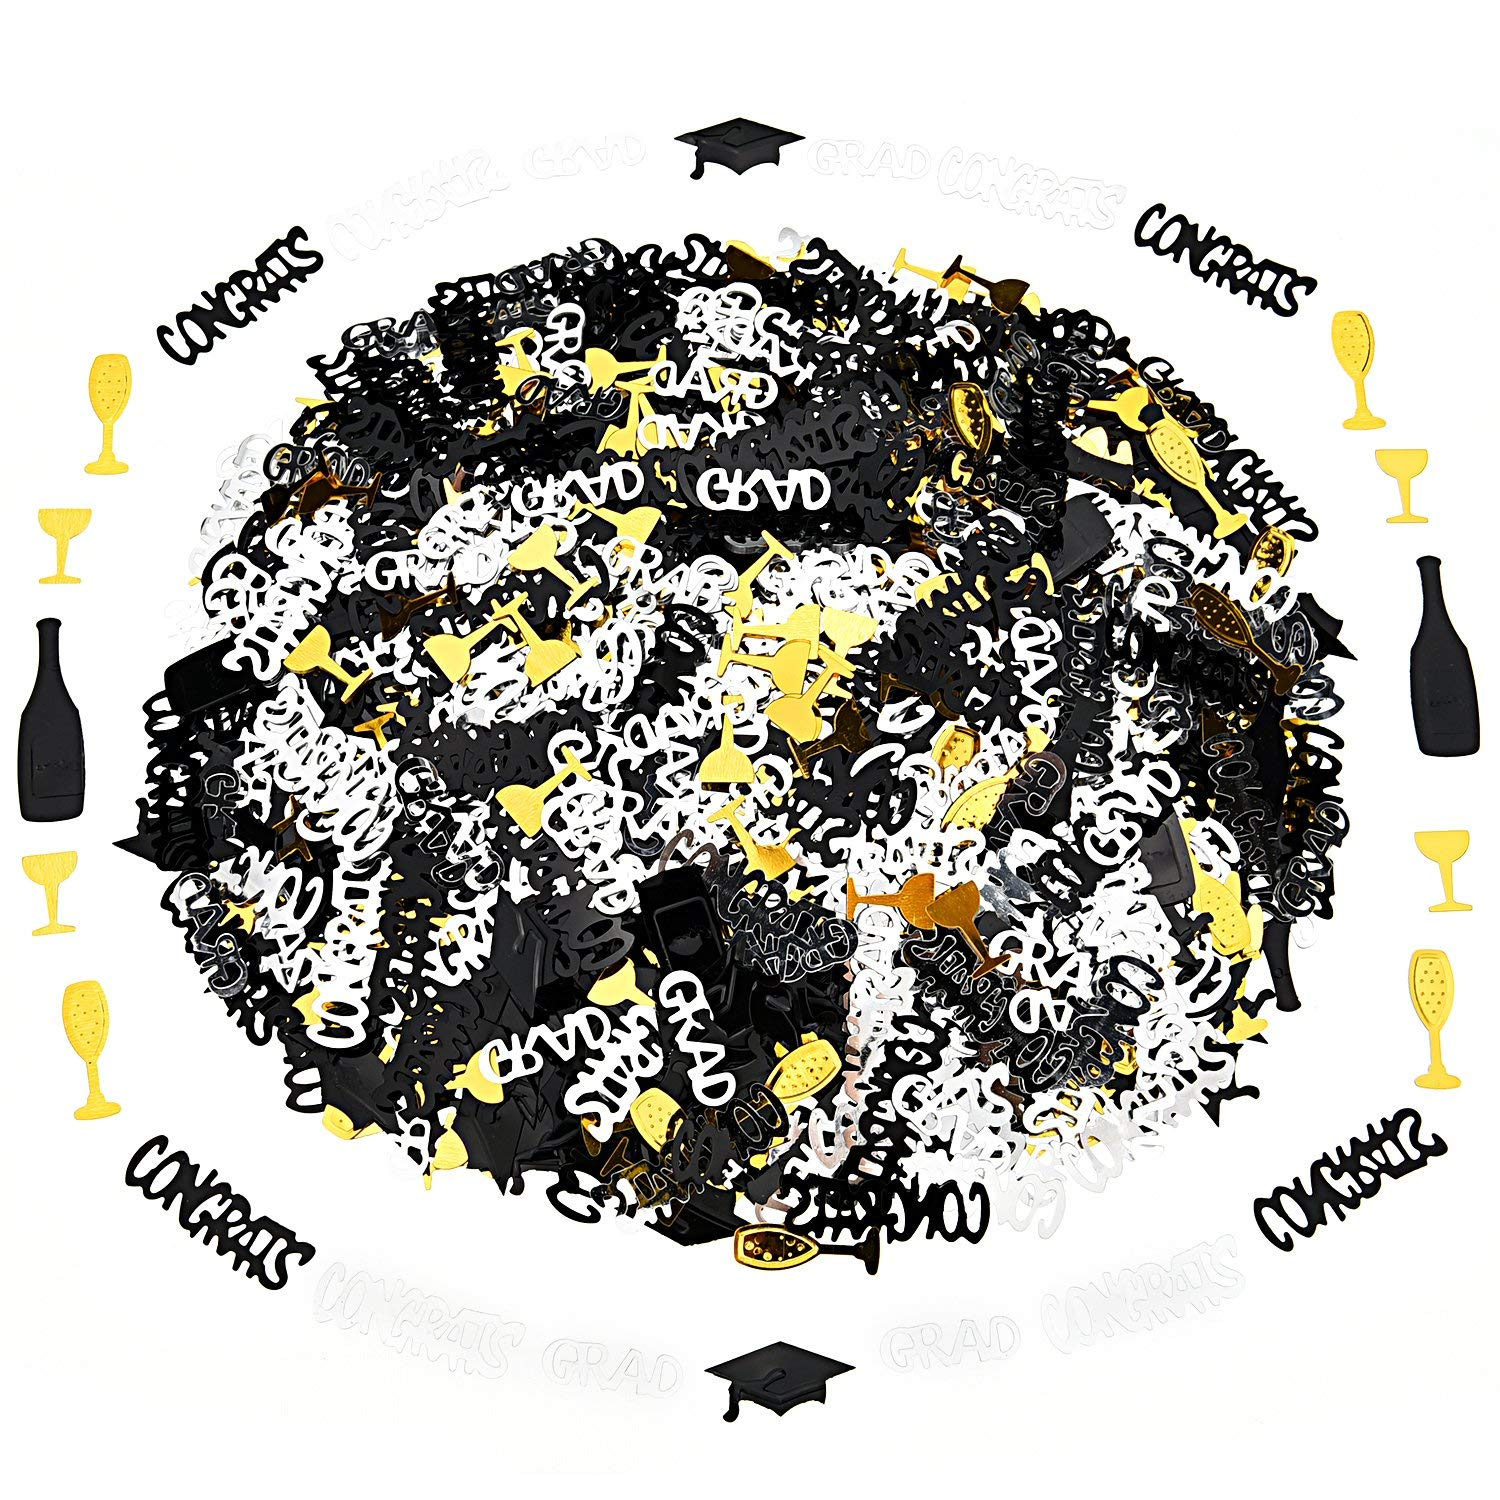 6 Pack Confetti Graduation Party Decoration -Graduation Hats, Balck CONGRSTS, Silver CONGRSTS, Gold Wine Glass, Champagne and Gold CRAD, Graduations Decorations 2018